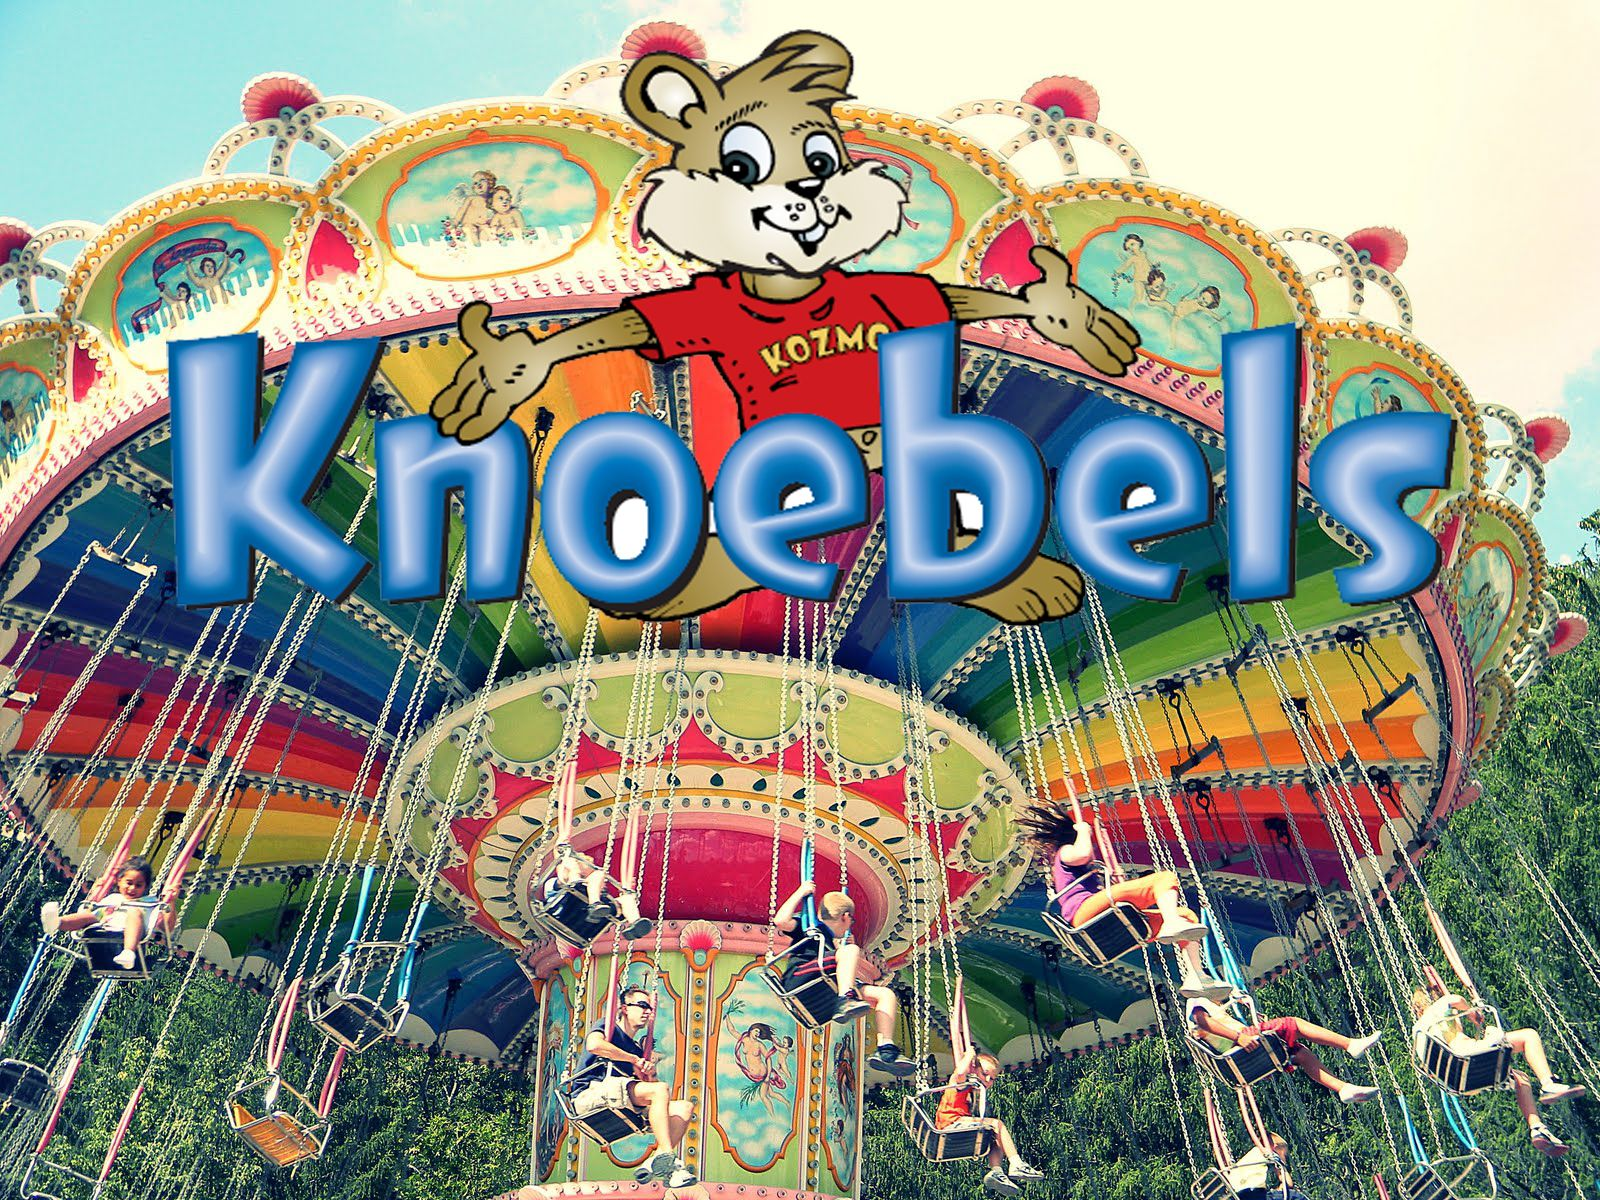 Knoebels Amut Park, Elysburg, PA: Local to us, free admission ... on six flags over georgia park map 2013, kennywood park map 2013, holiday world park map 2013,